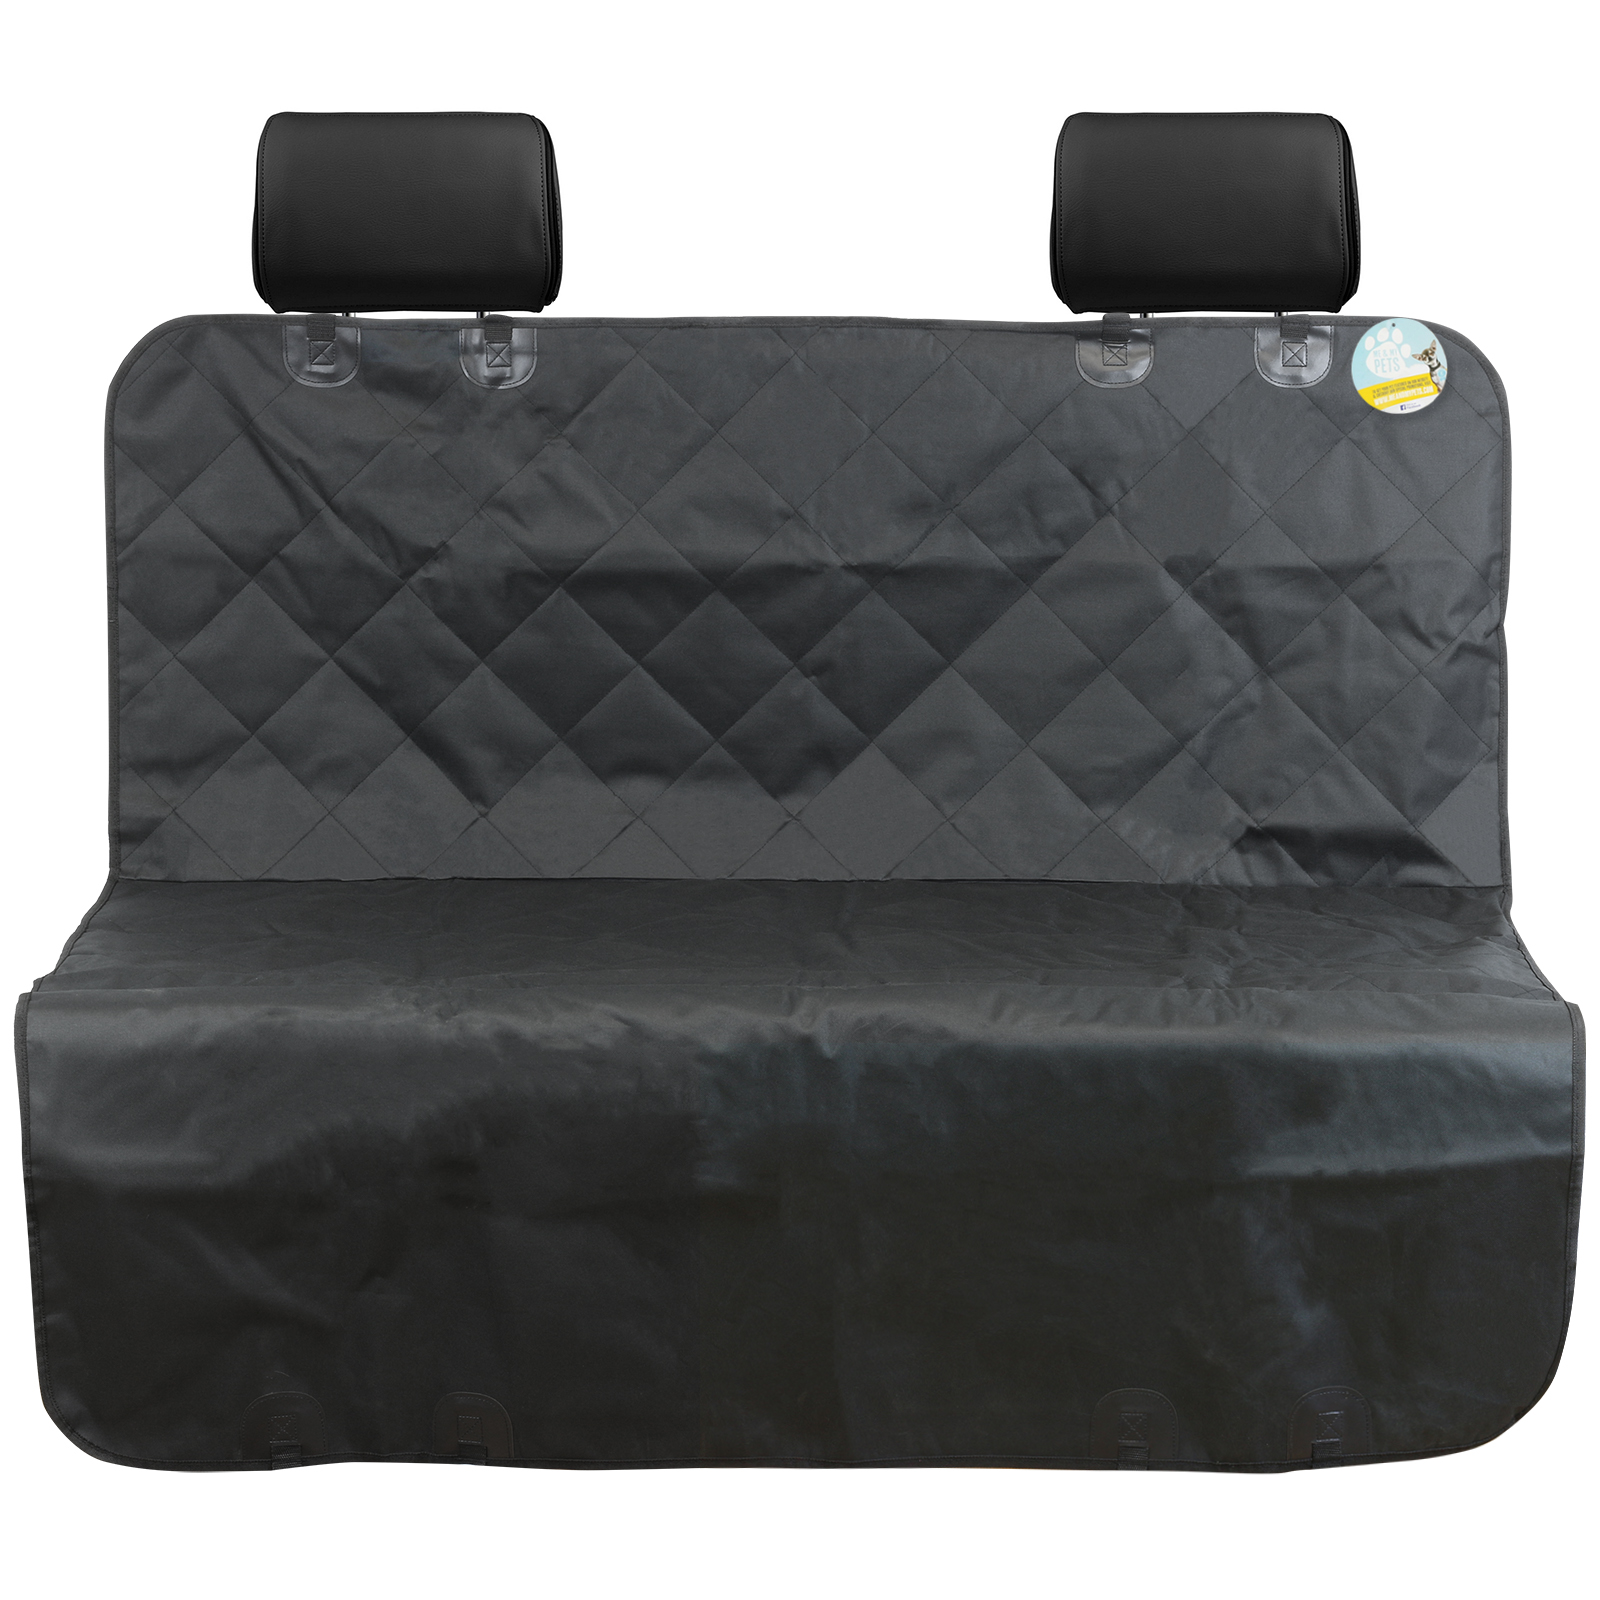 me my premium waterproof dog pet car seat cover rear back protector hammock ebay. Black Bedroom Furniture Sets. Home Design Ideas